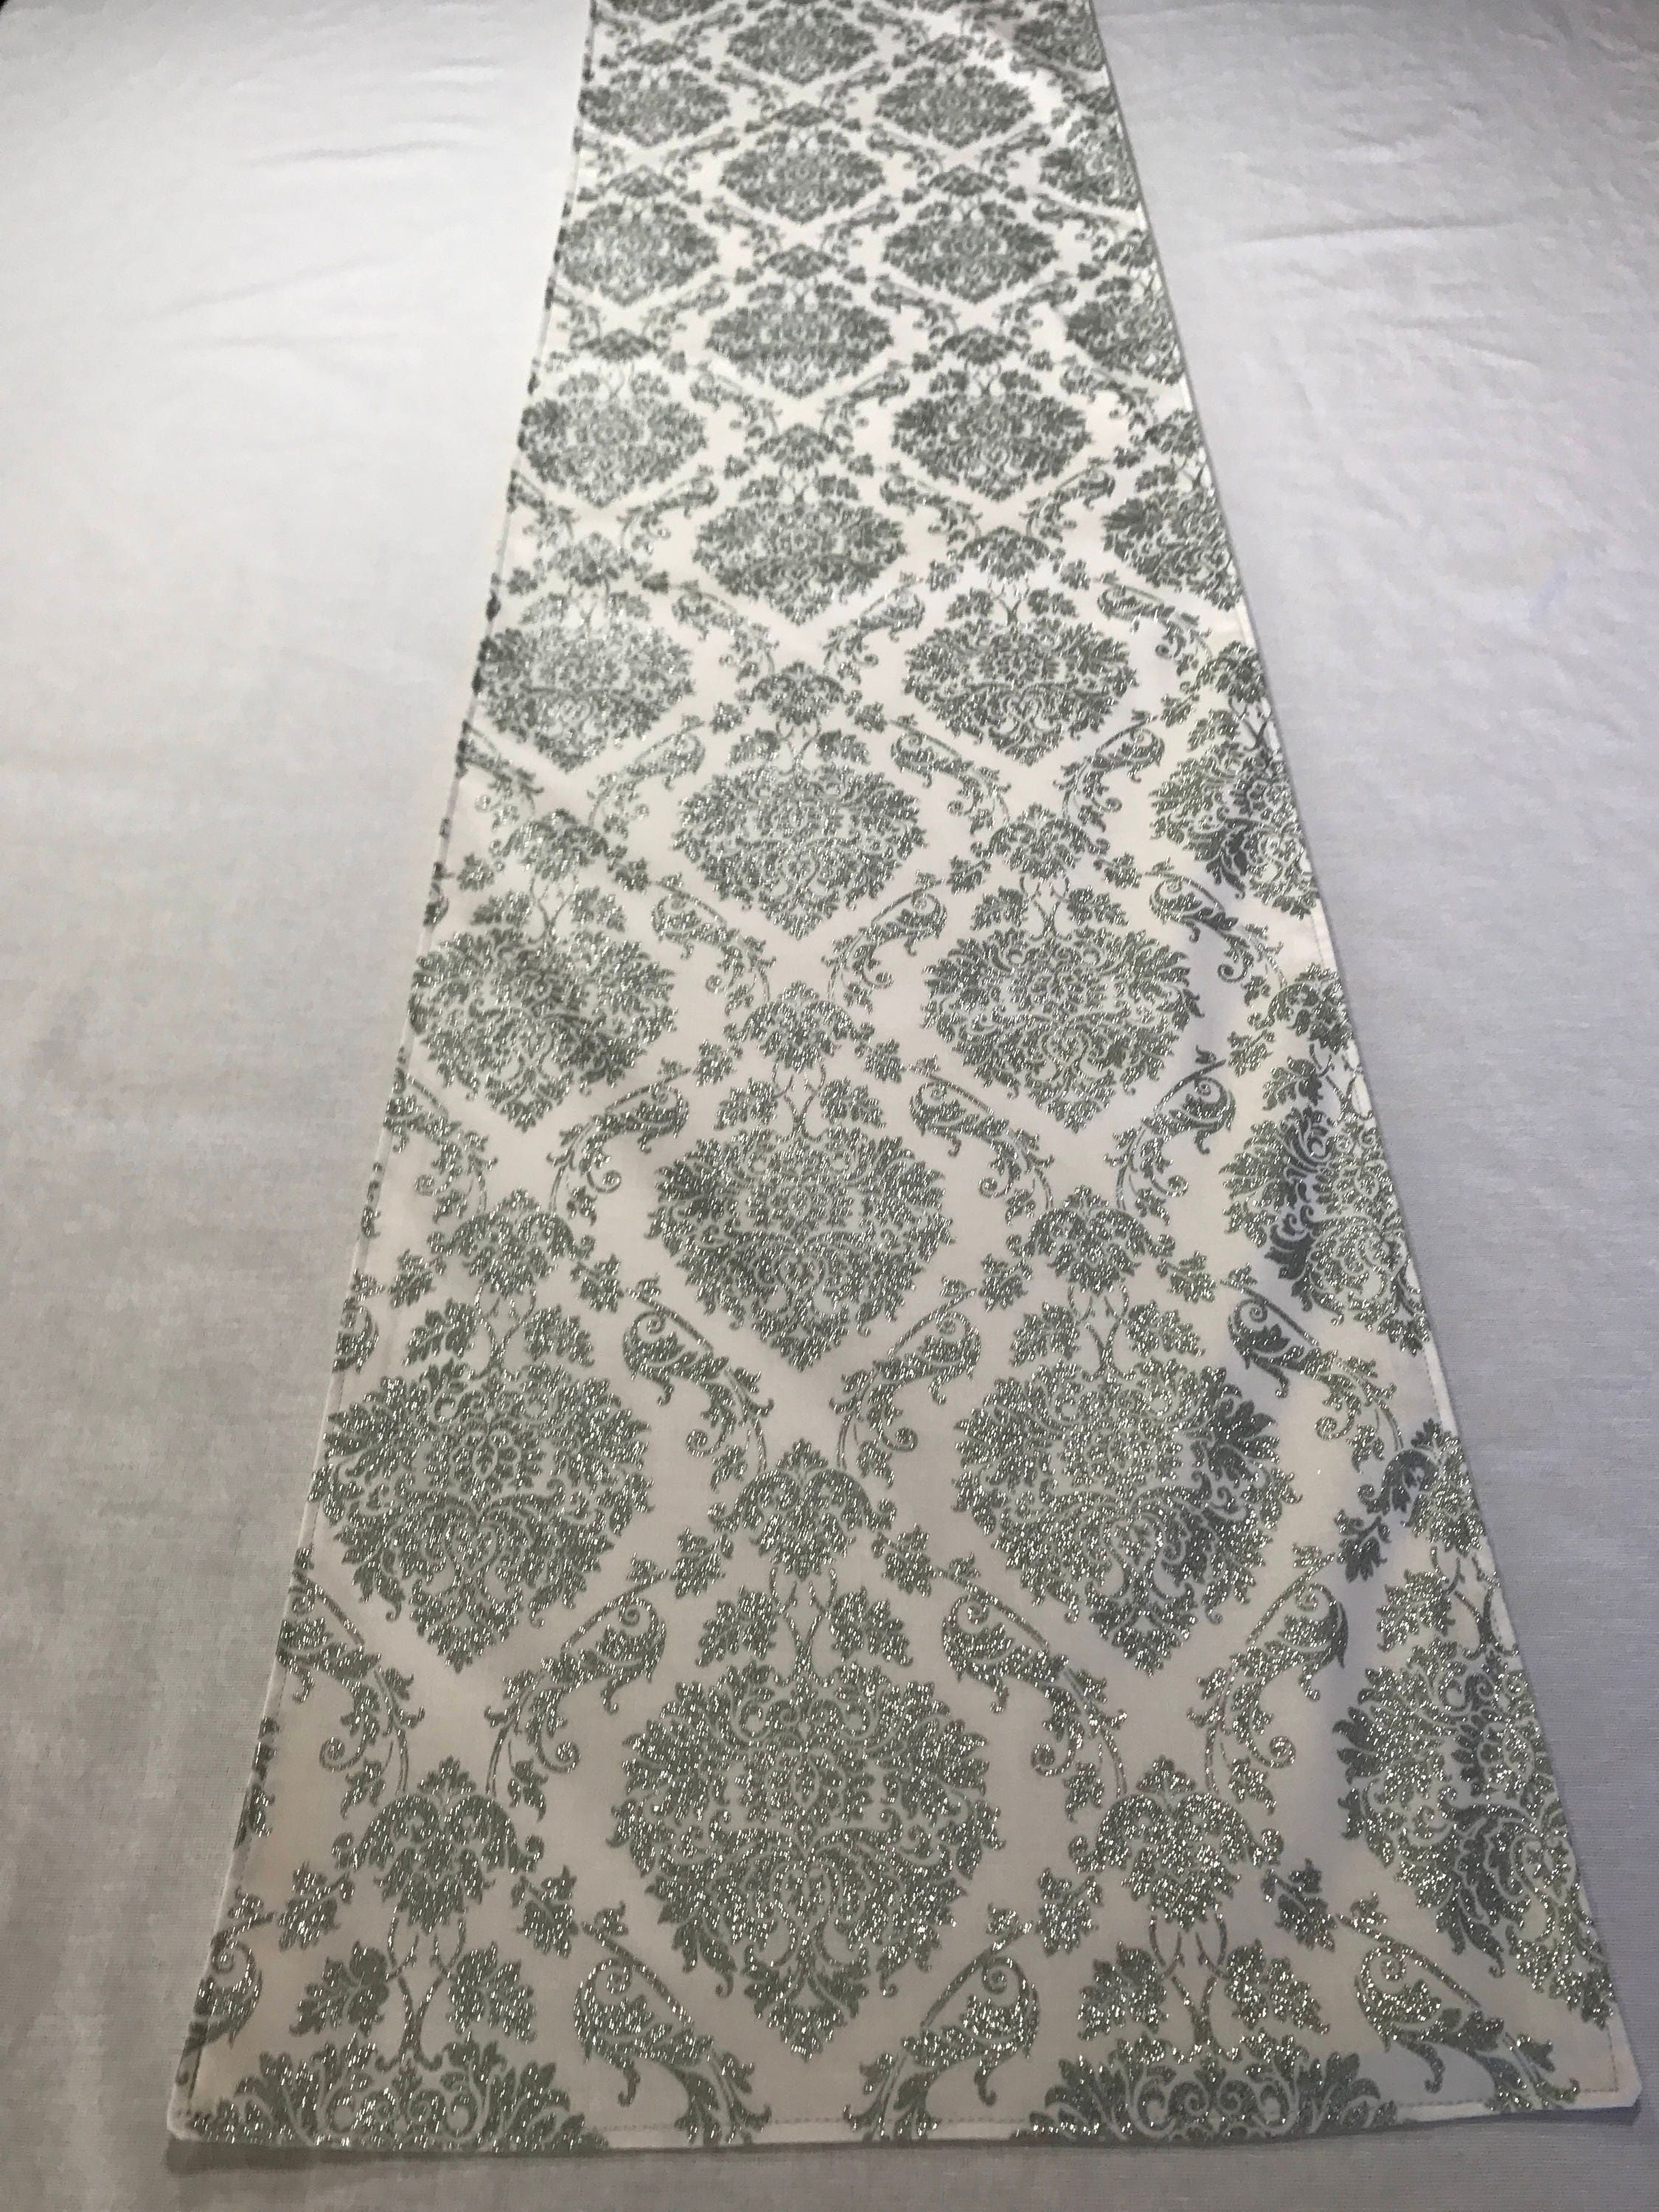 Silver Table Runner, White And Silver Table Runner, Winter Table Runner, Elegant  Table Runner, Silver Glitter Table Runner, Holiday Runner